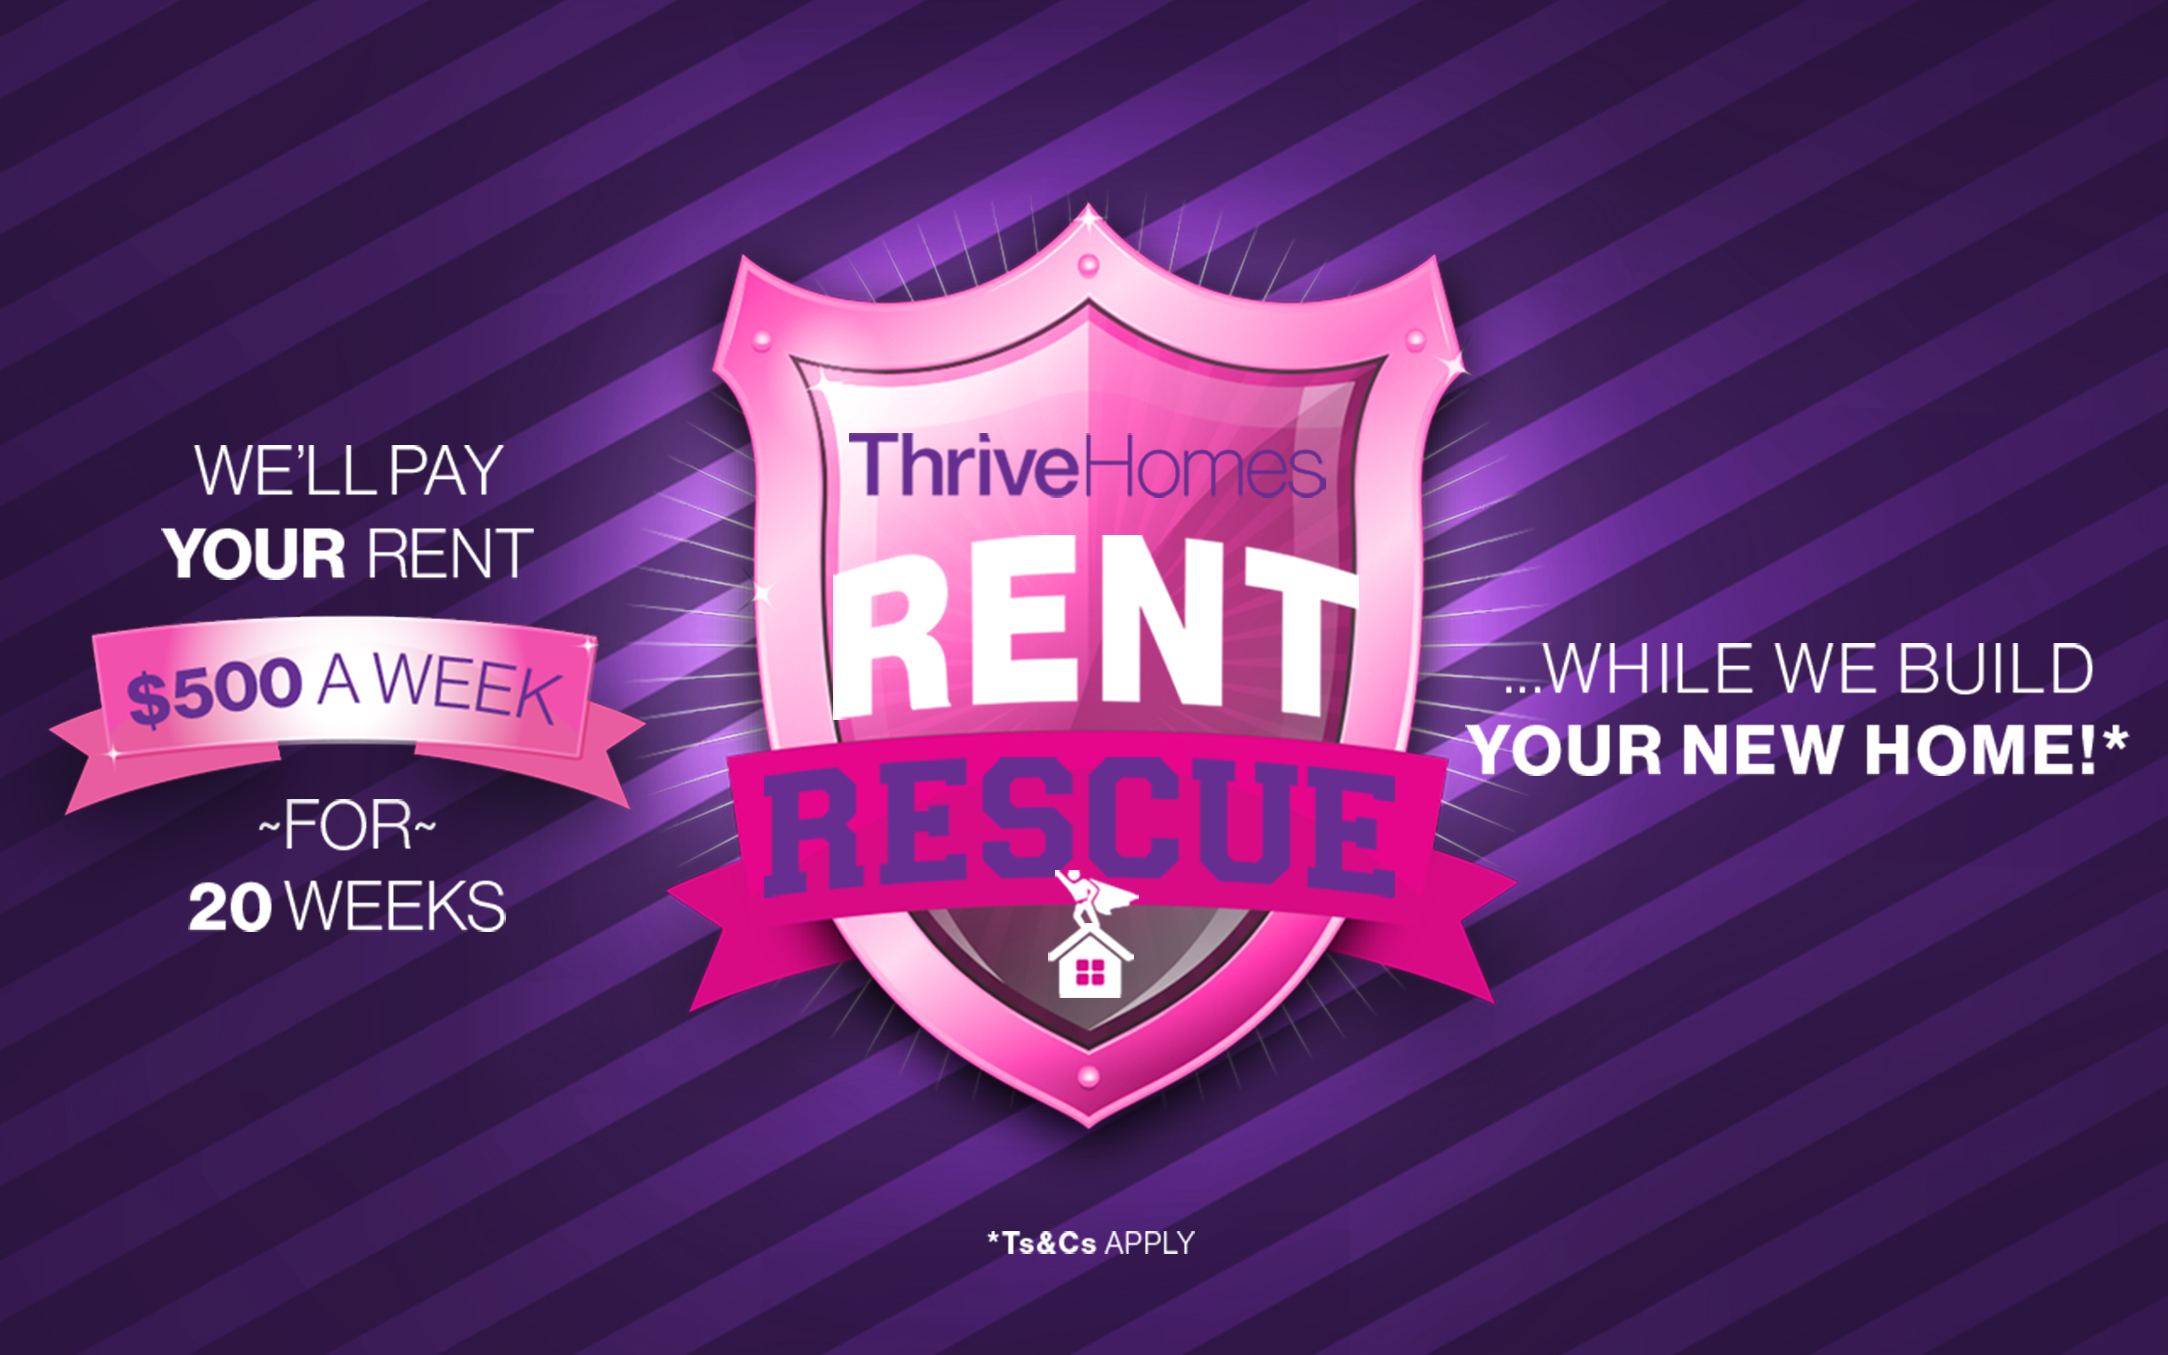 Thrive Homes Rent Rescue Promotion